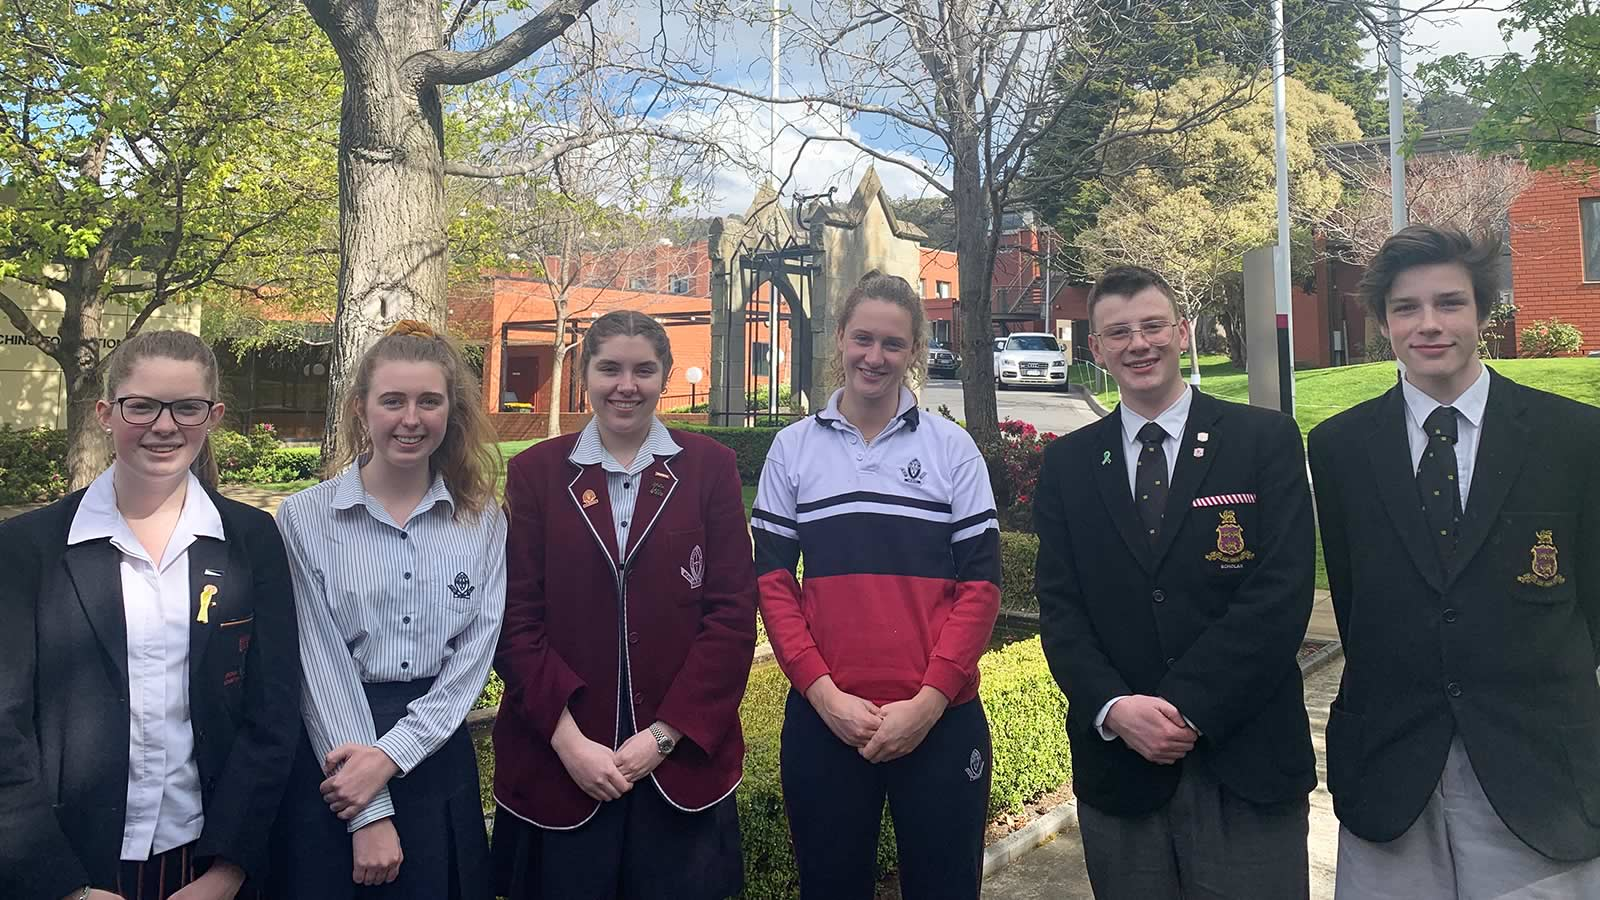 L–R Abbey Calvert (Year 11), Alexandra Wilbur (Year 12), Heather Russell (Year 12), Lily Fisher (Year 11), Ethan Medwin (Year 11) and Hugo Hemmings (Year 11).